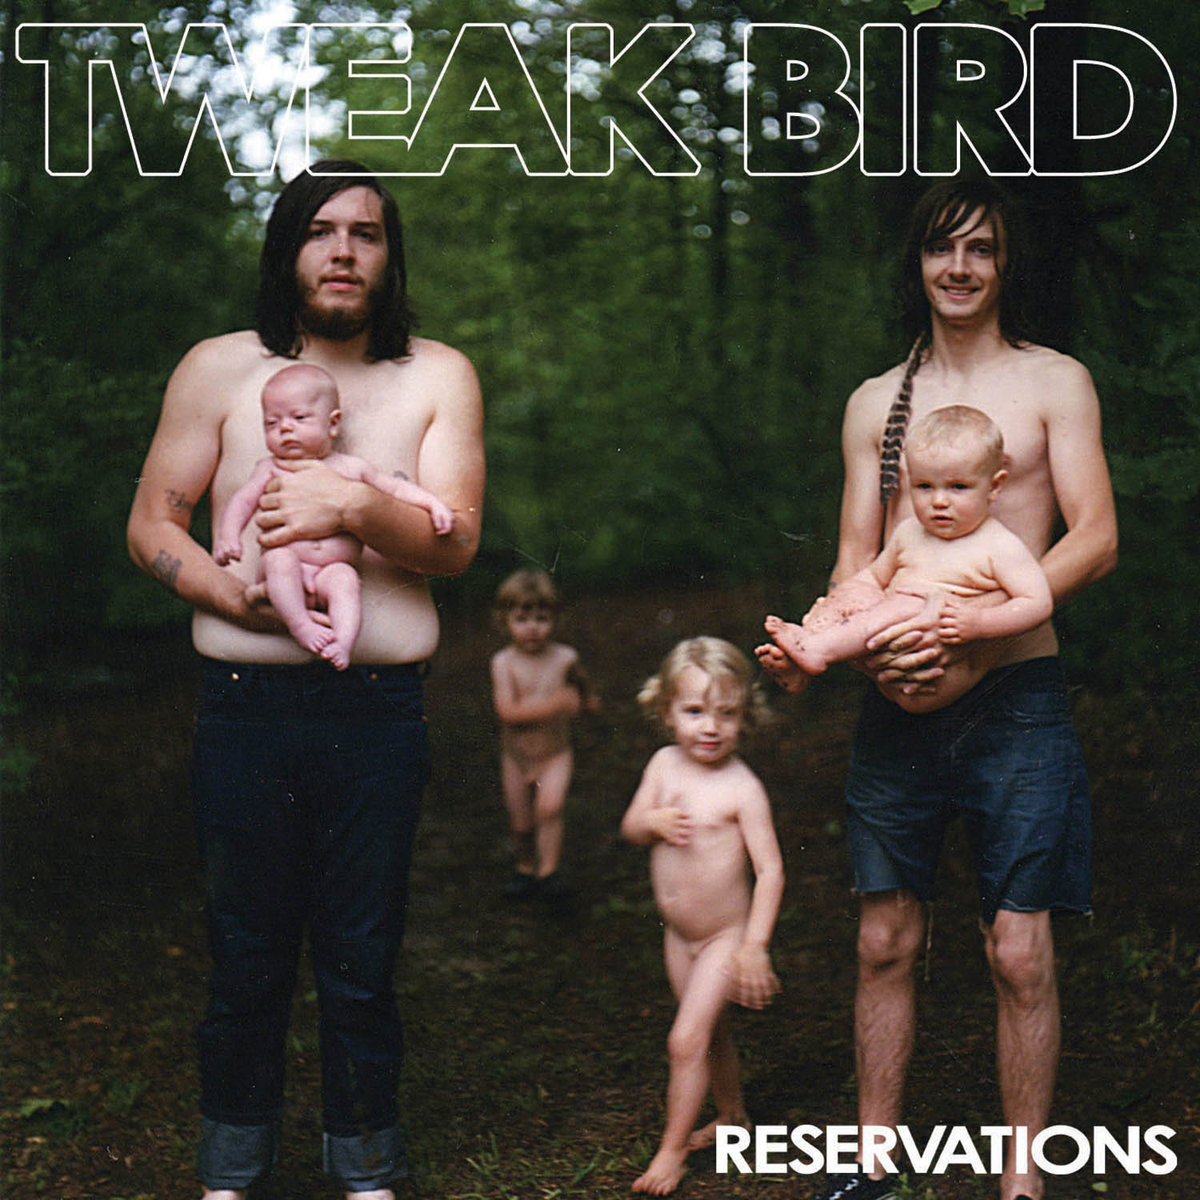 TWEAK BIRD – RESERVATIONS (EP)